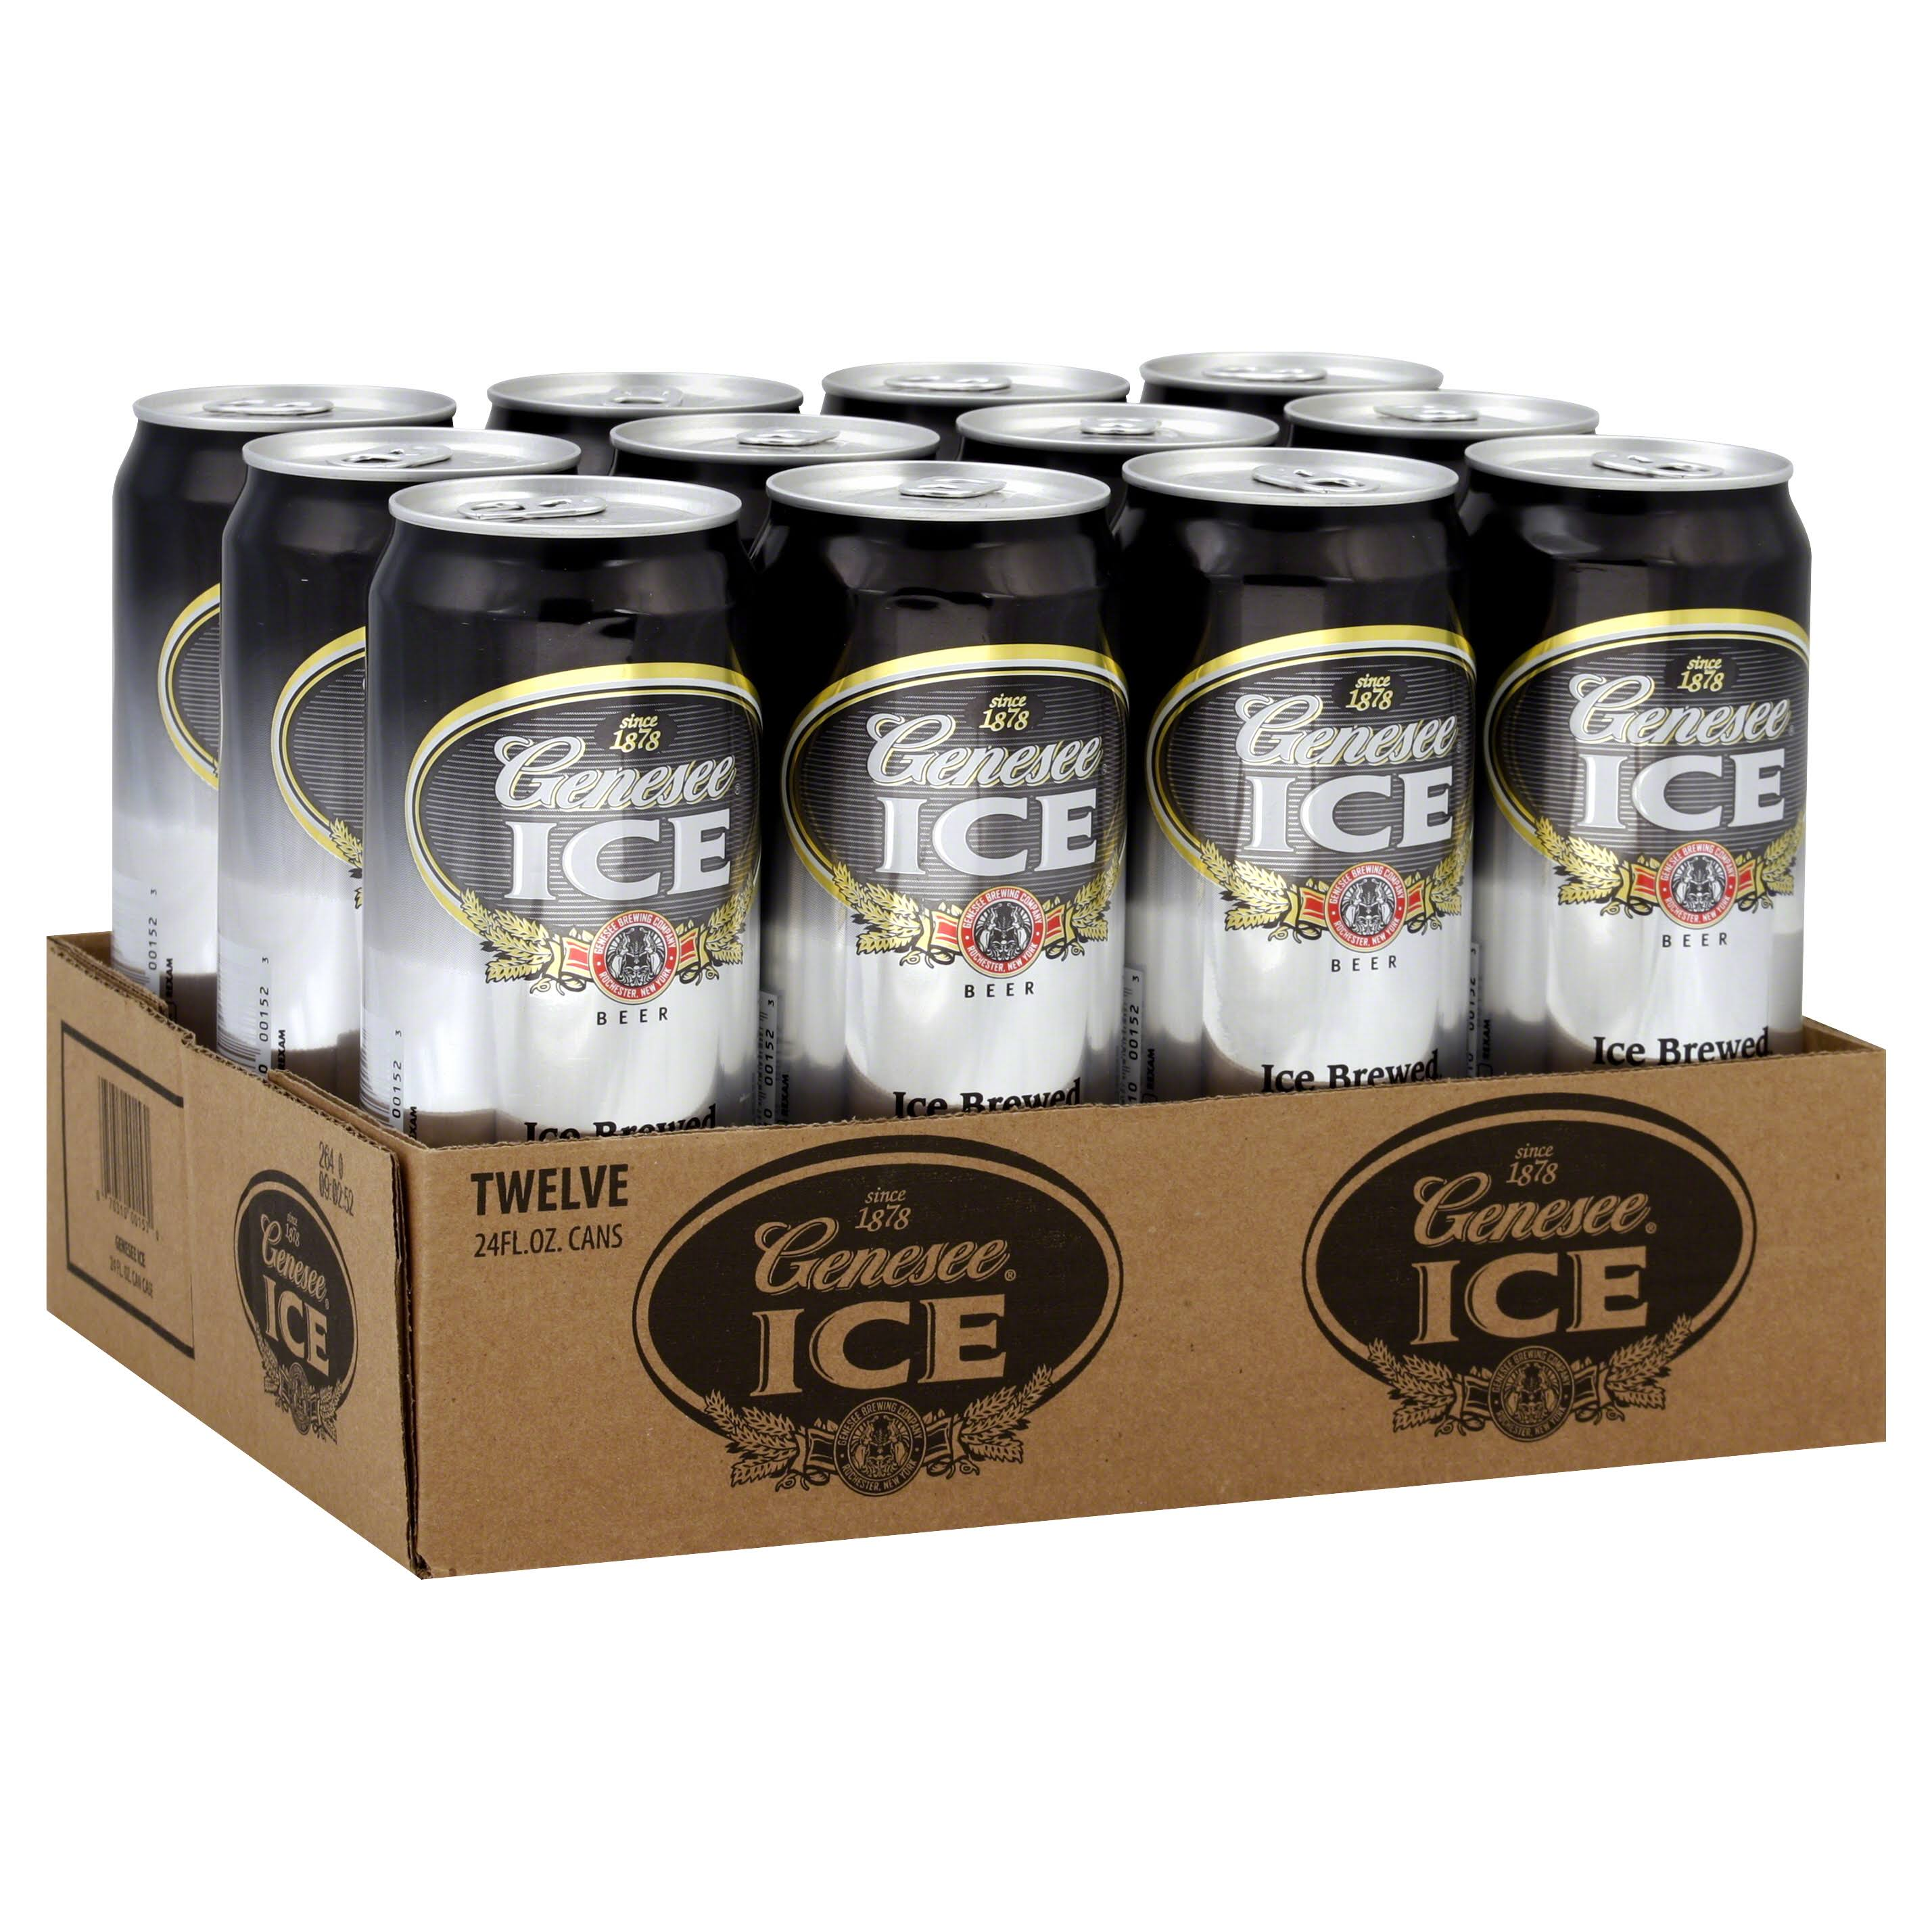 Genesee Ice Beer - 12 pack, 24 fl oz